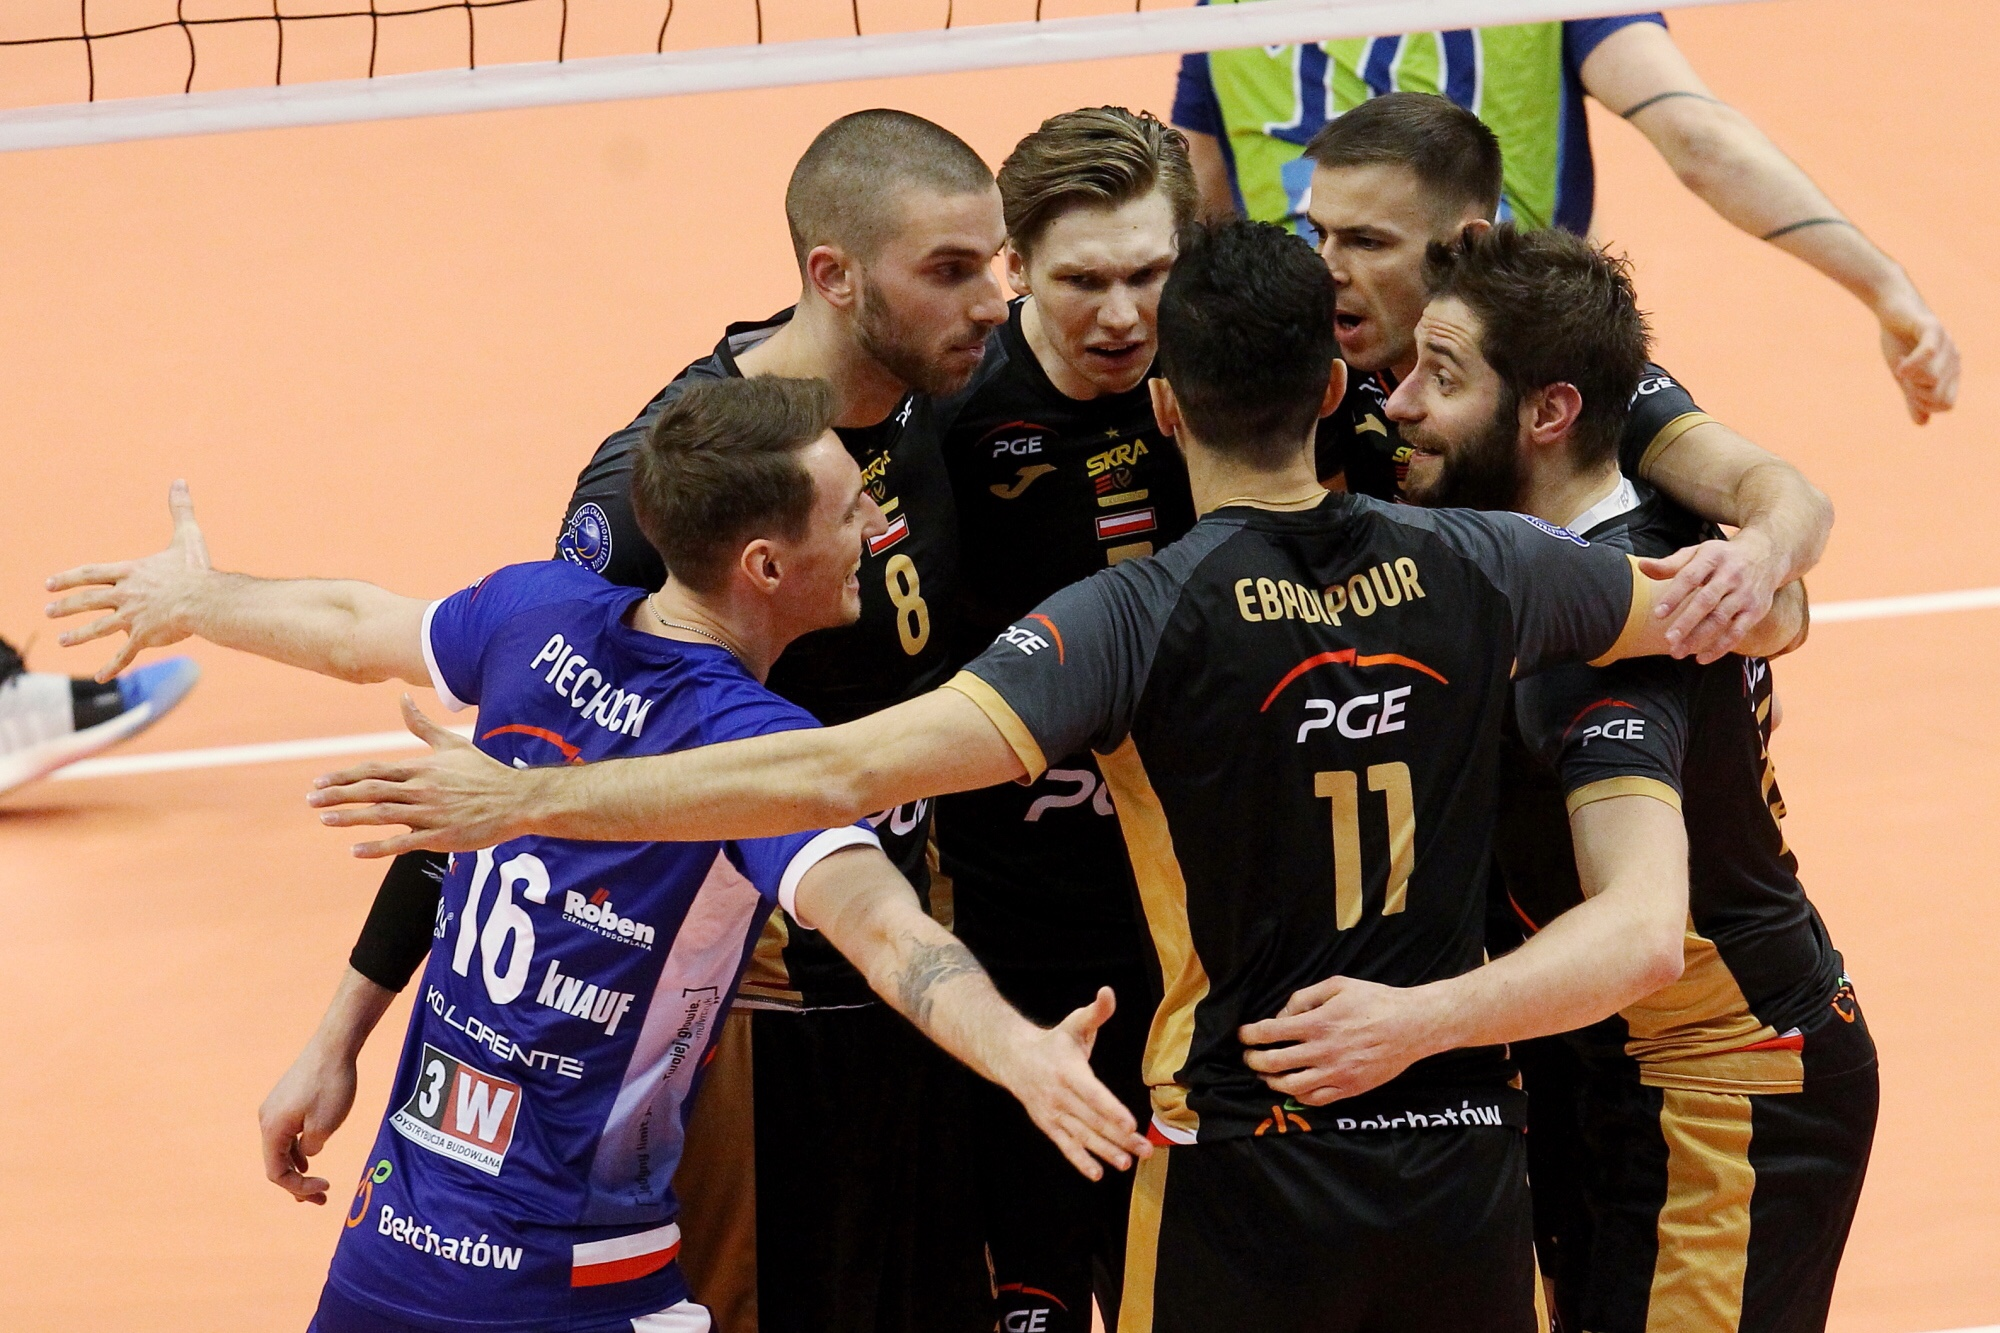 #ChampionsLeague: Golden set decides the winner in St. Petersburg: Skra advance to the semifinals. No problem for Perugia against Chaumont.